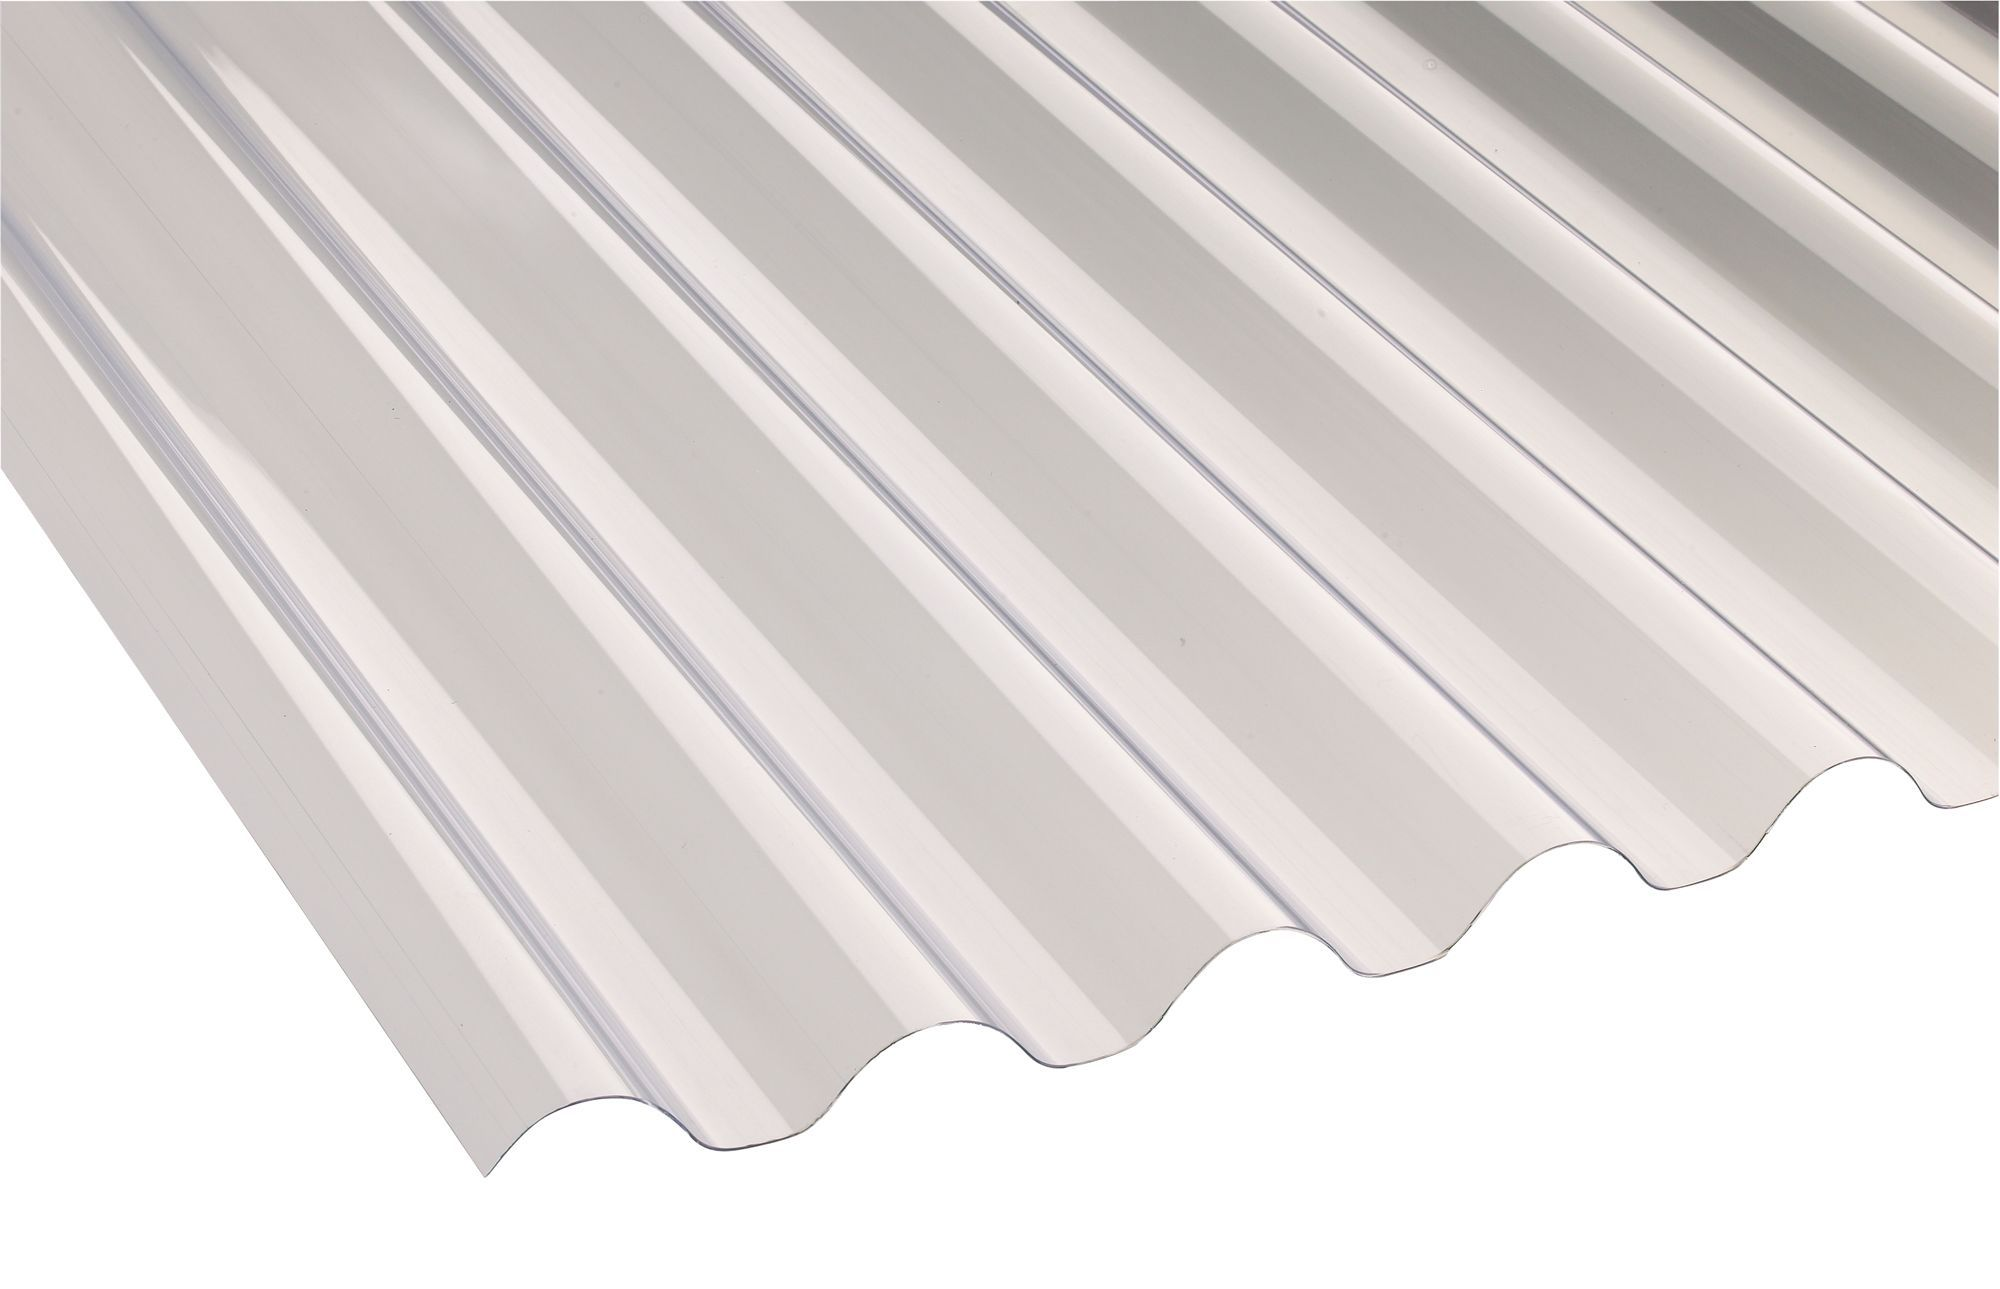 Translucent PVC Roofing Sheet 18M x 660mm  Departments